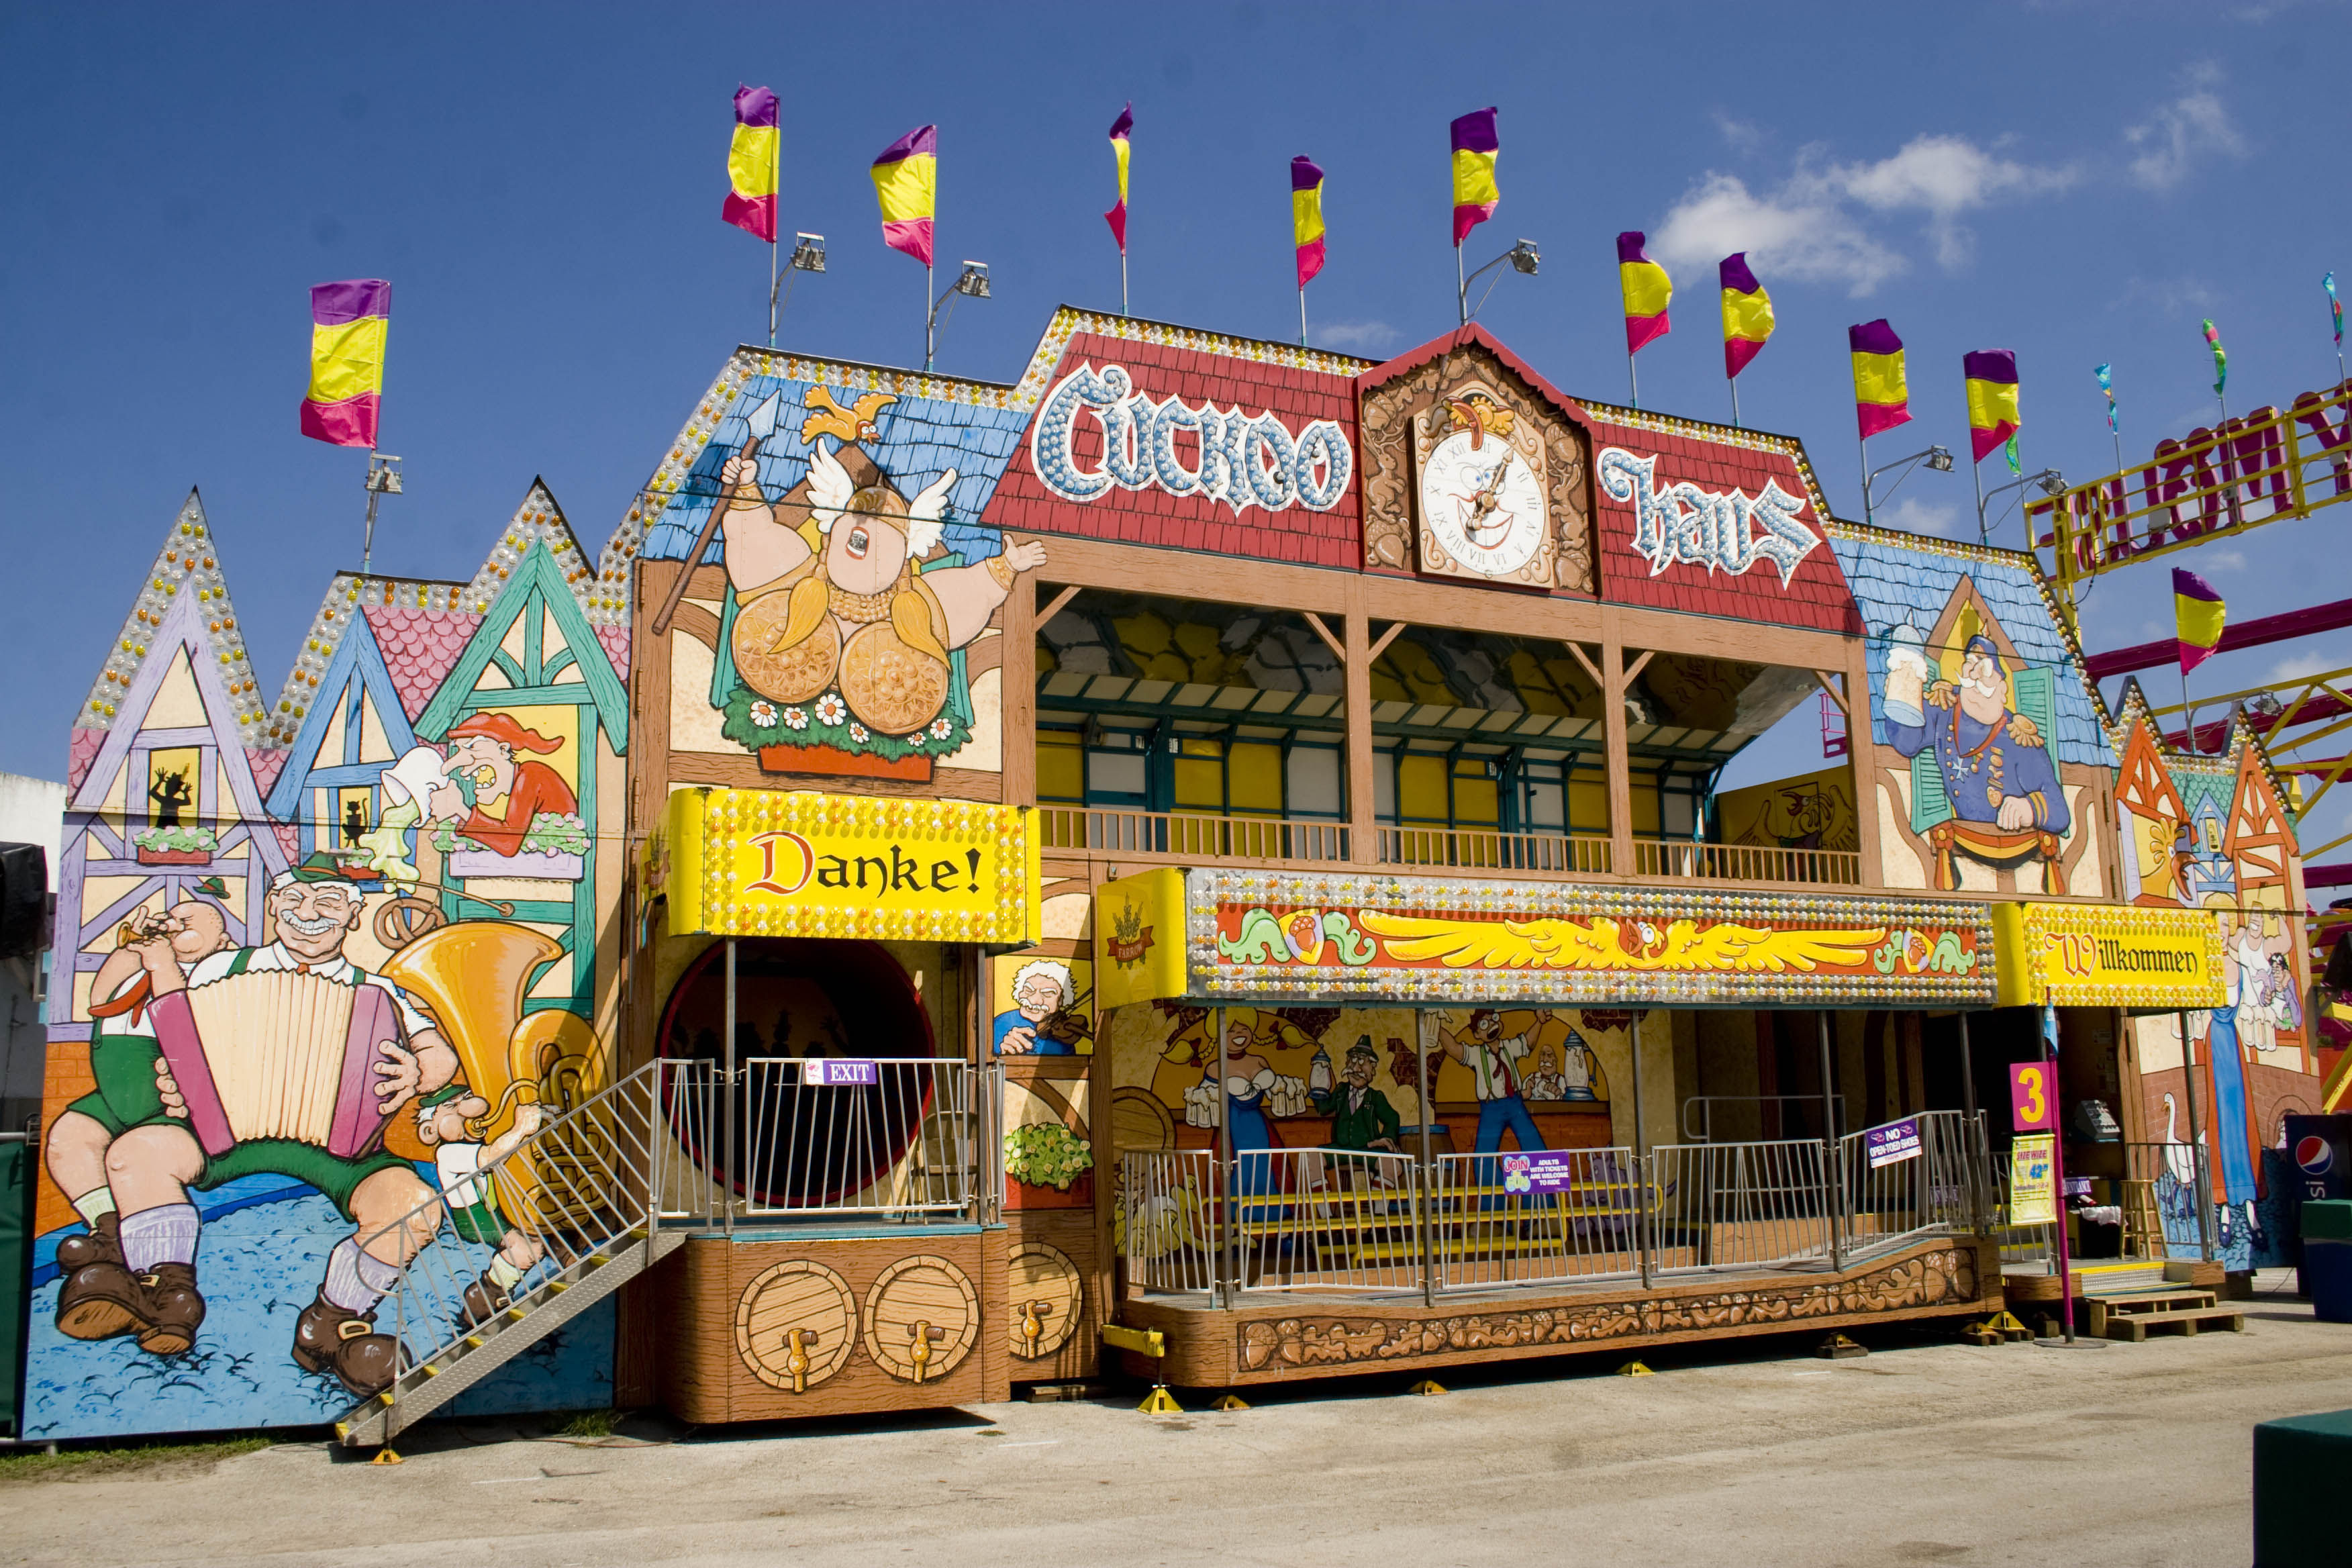 CUCKOO HAUS (6) 1 | Canadian Association Of Fairs & Exhibitions